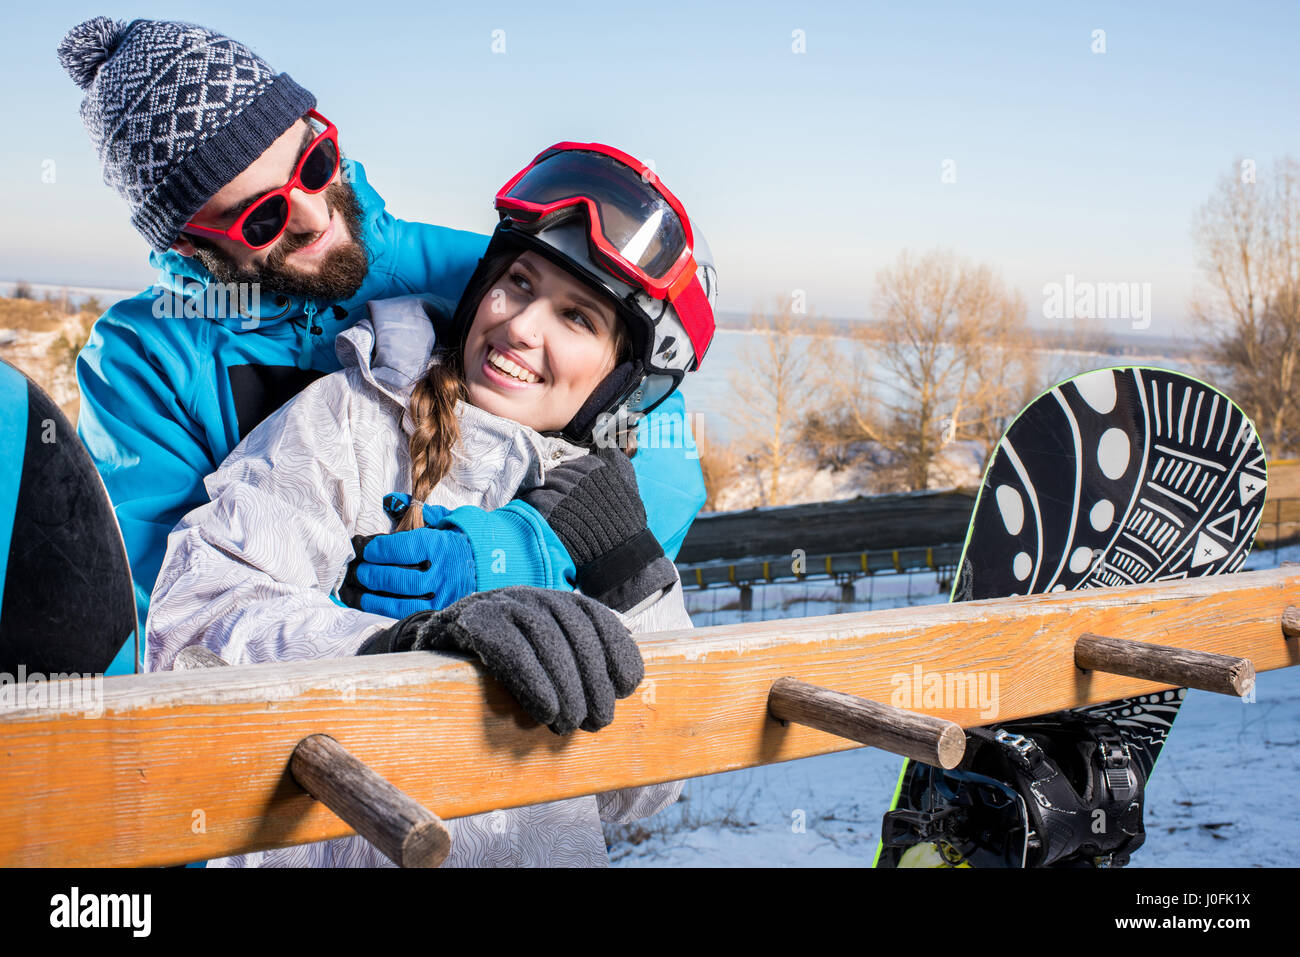 Young male and female snowboarders embracing and smiling at each other - Stock Image